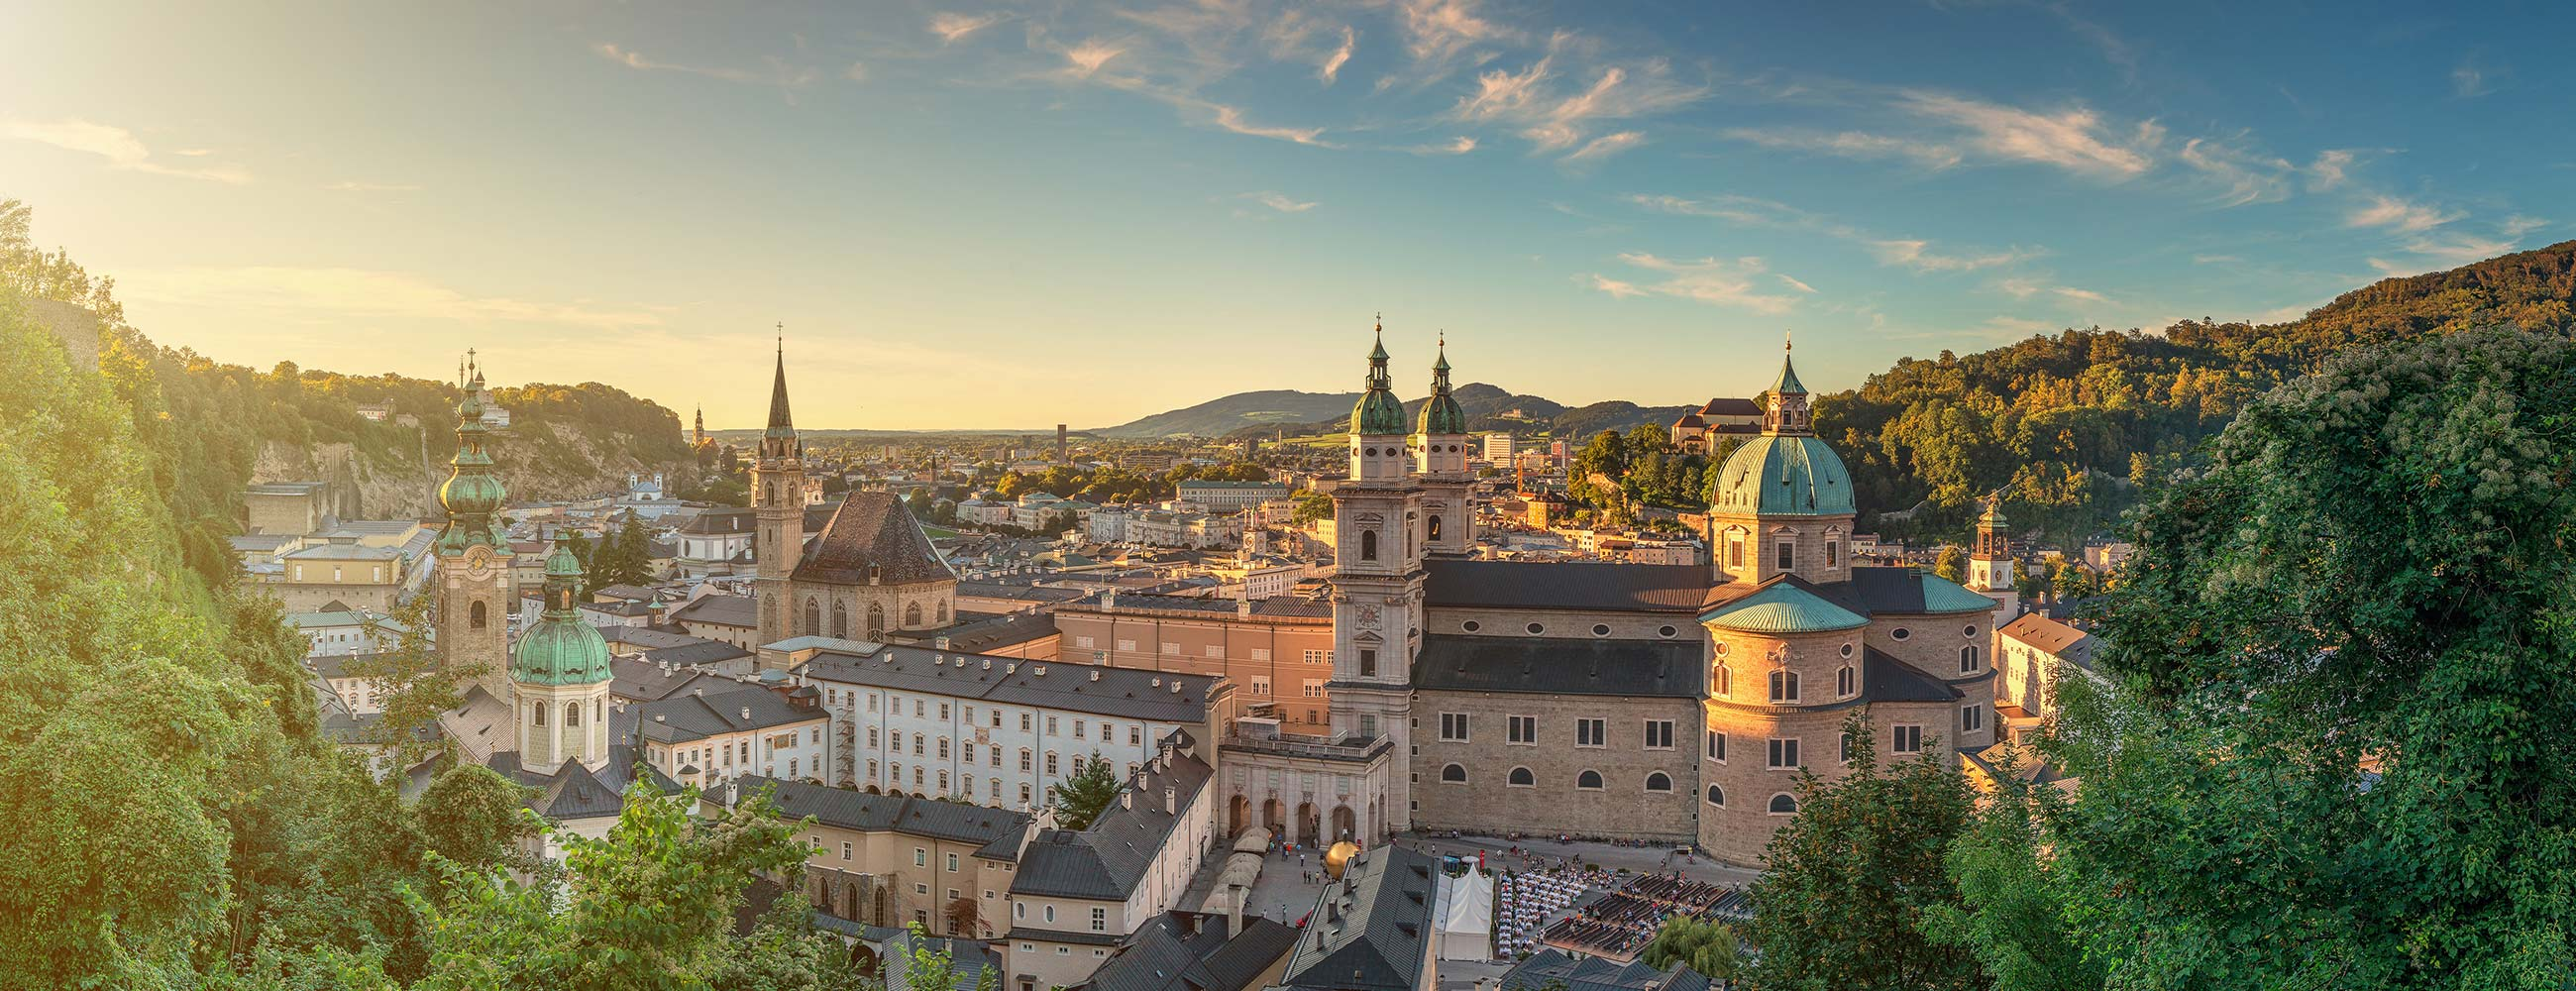 The-Hills-are-Alive-with-the-Sound-of-Salzburg-hero-image